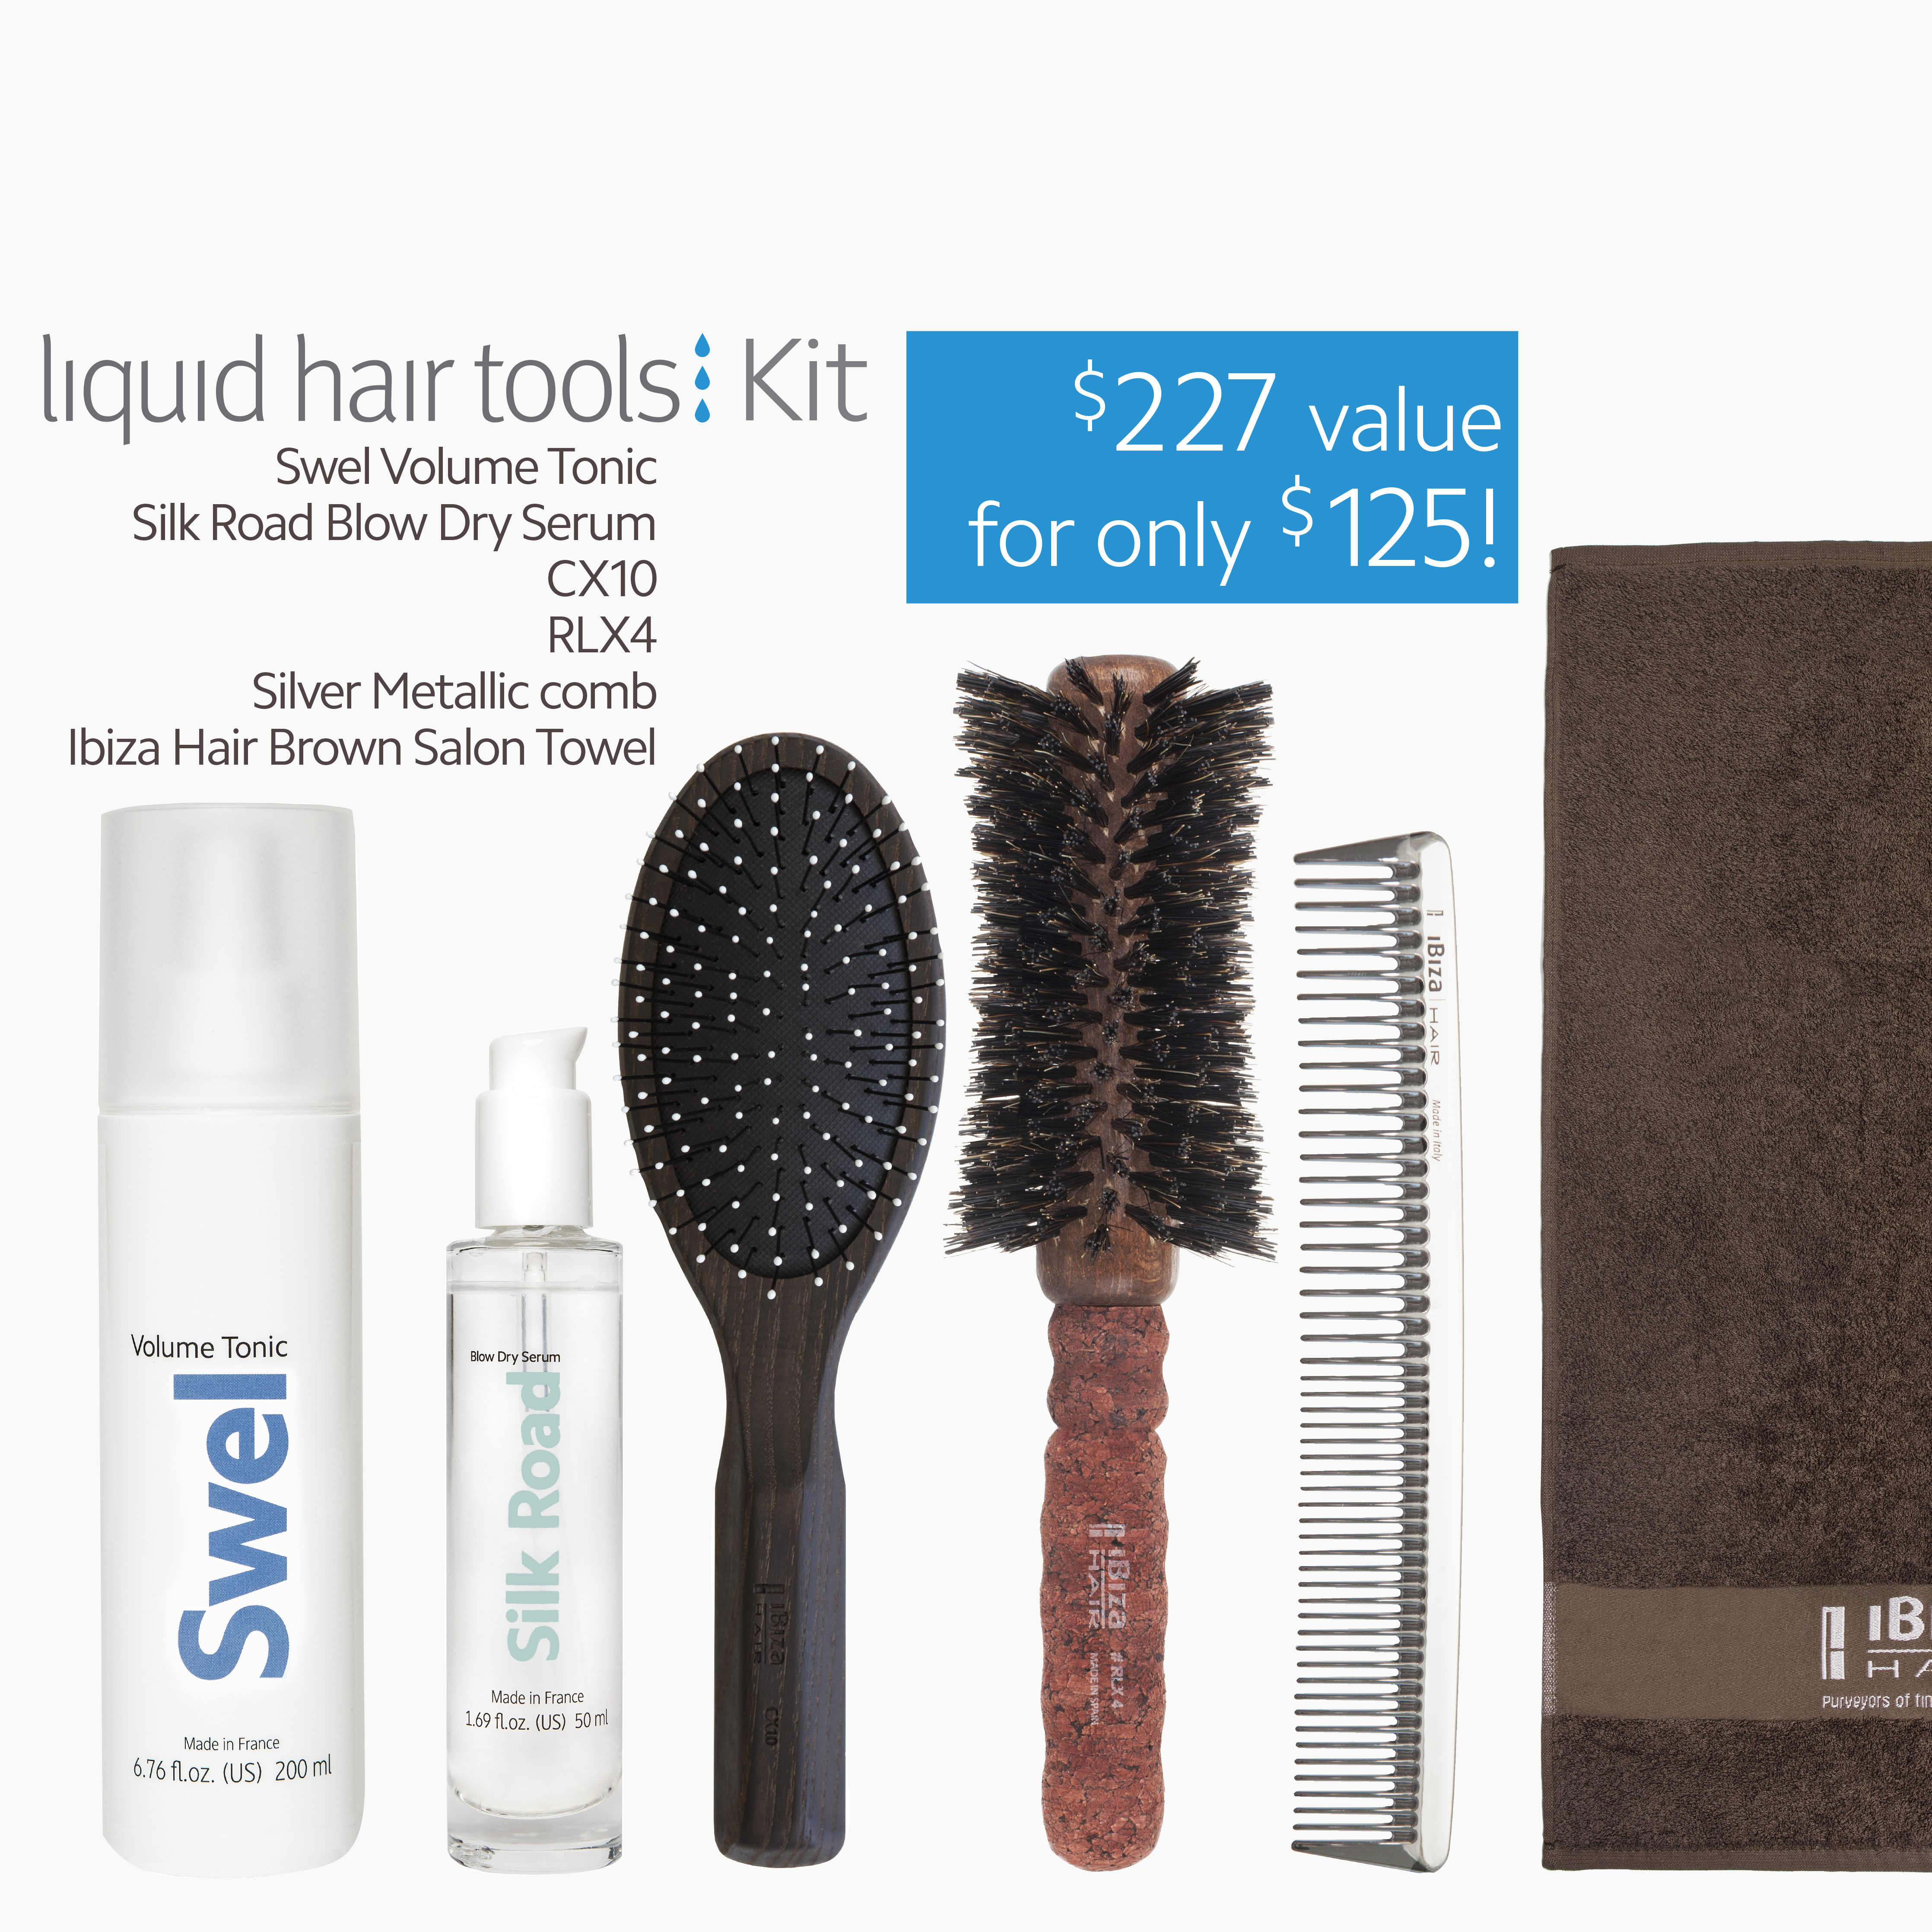 liquid hair tools kit